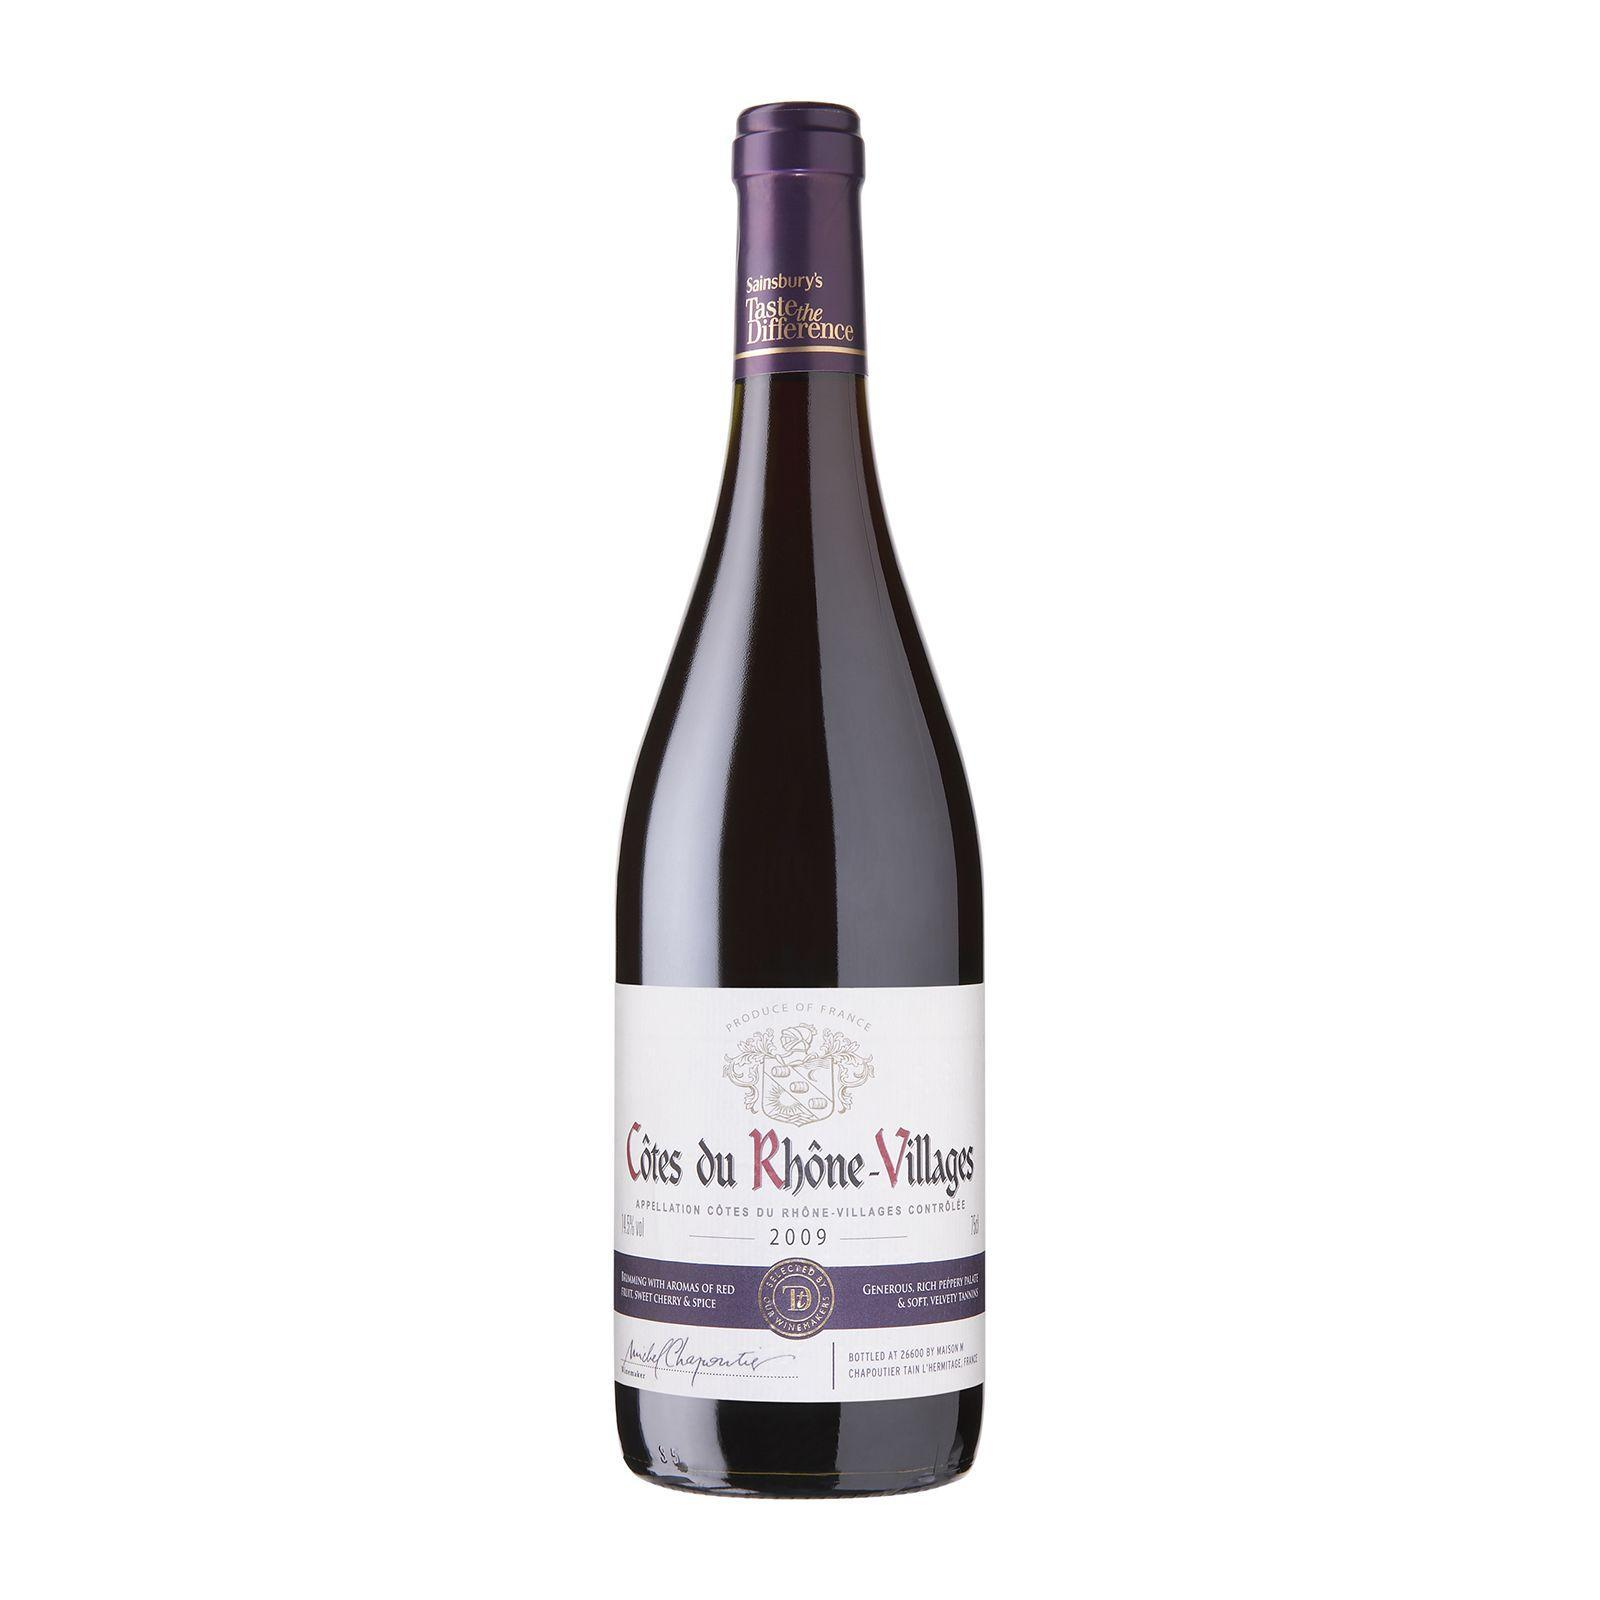 Sainsbury's Taste the Difference Cotes Du Rhone Villages Red Wine